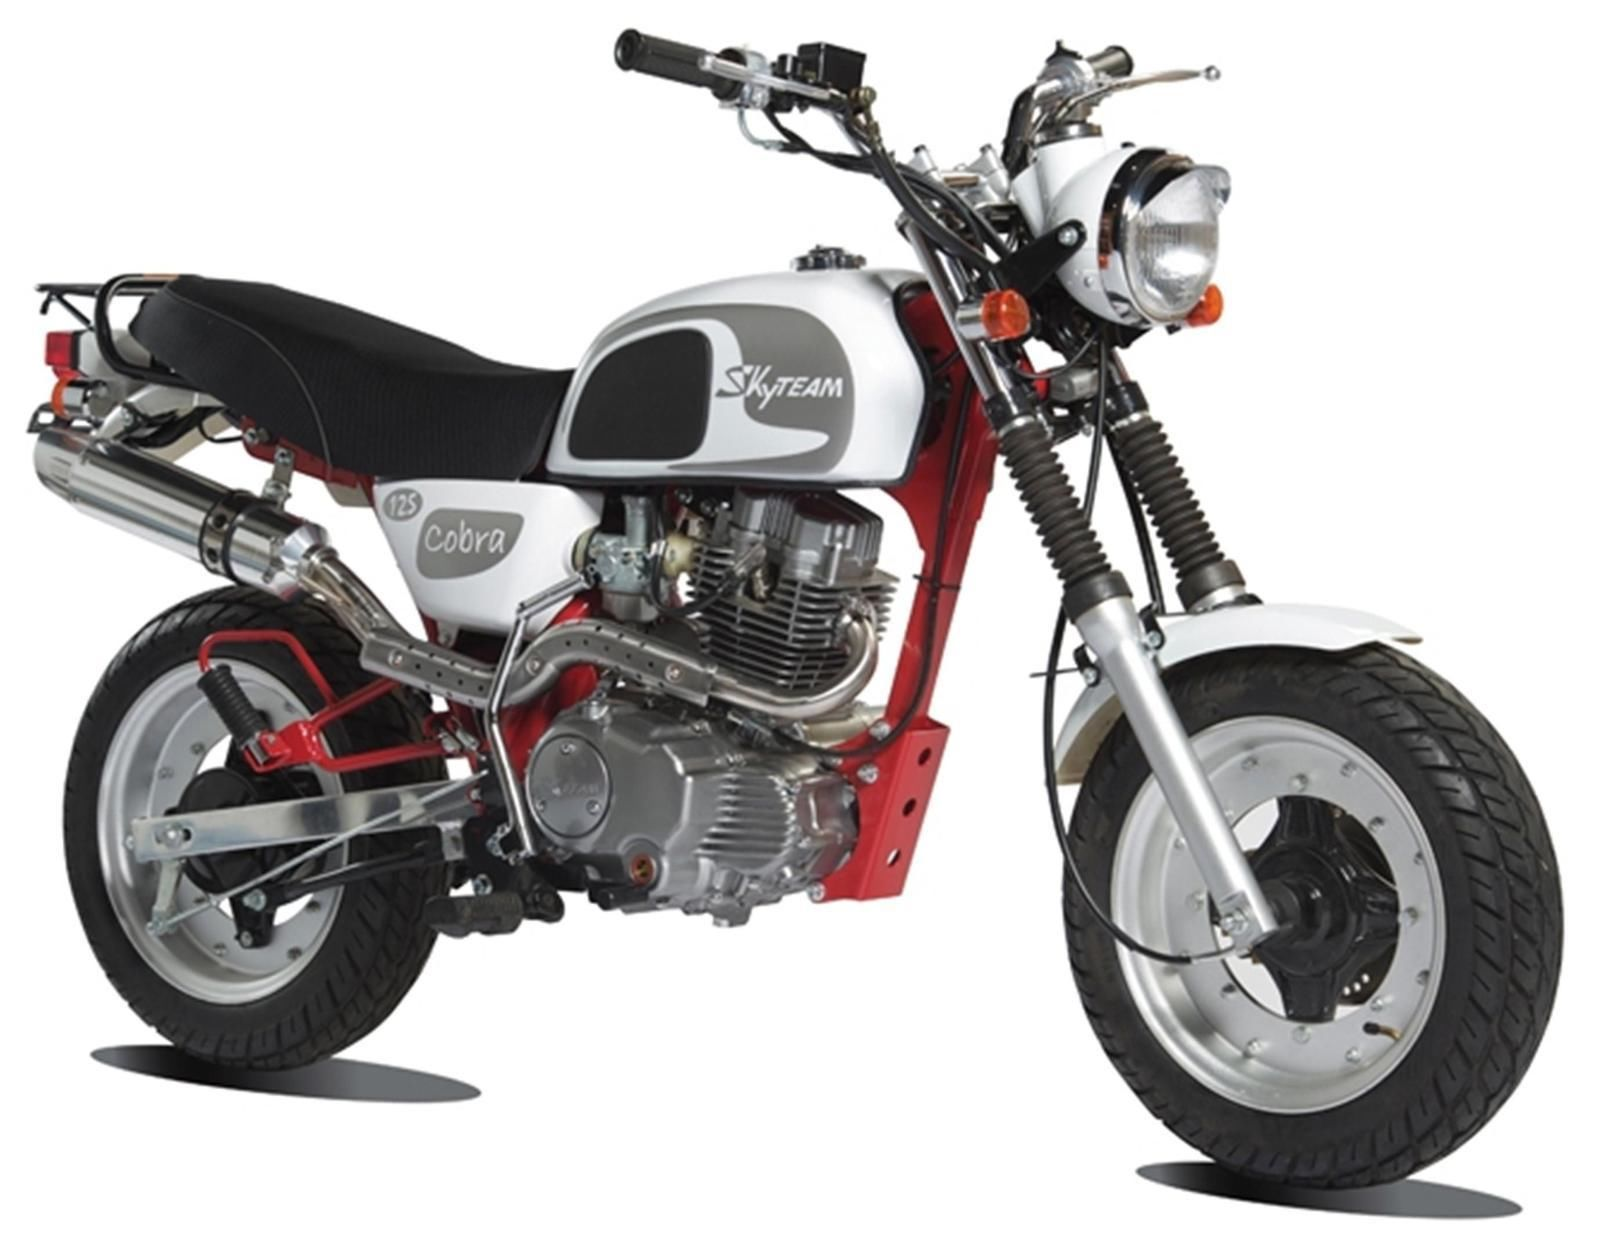 cobra 125 new monkey bike from skyteam 125cc. Black Bedroom Furniture Sets. Home Design Ideas